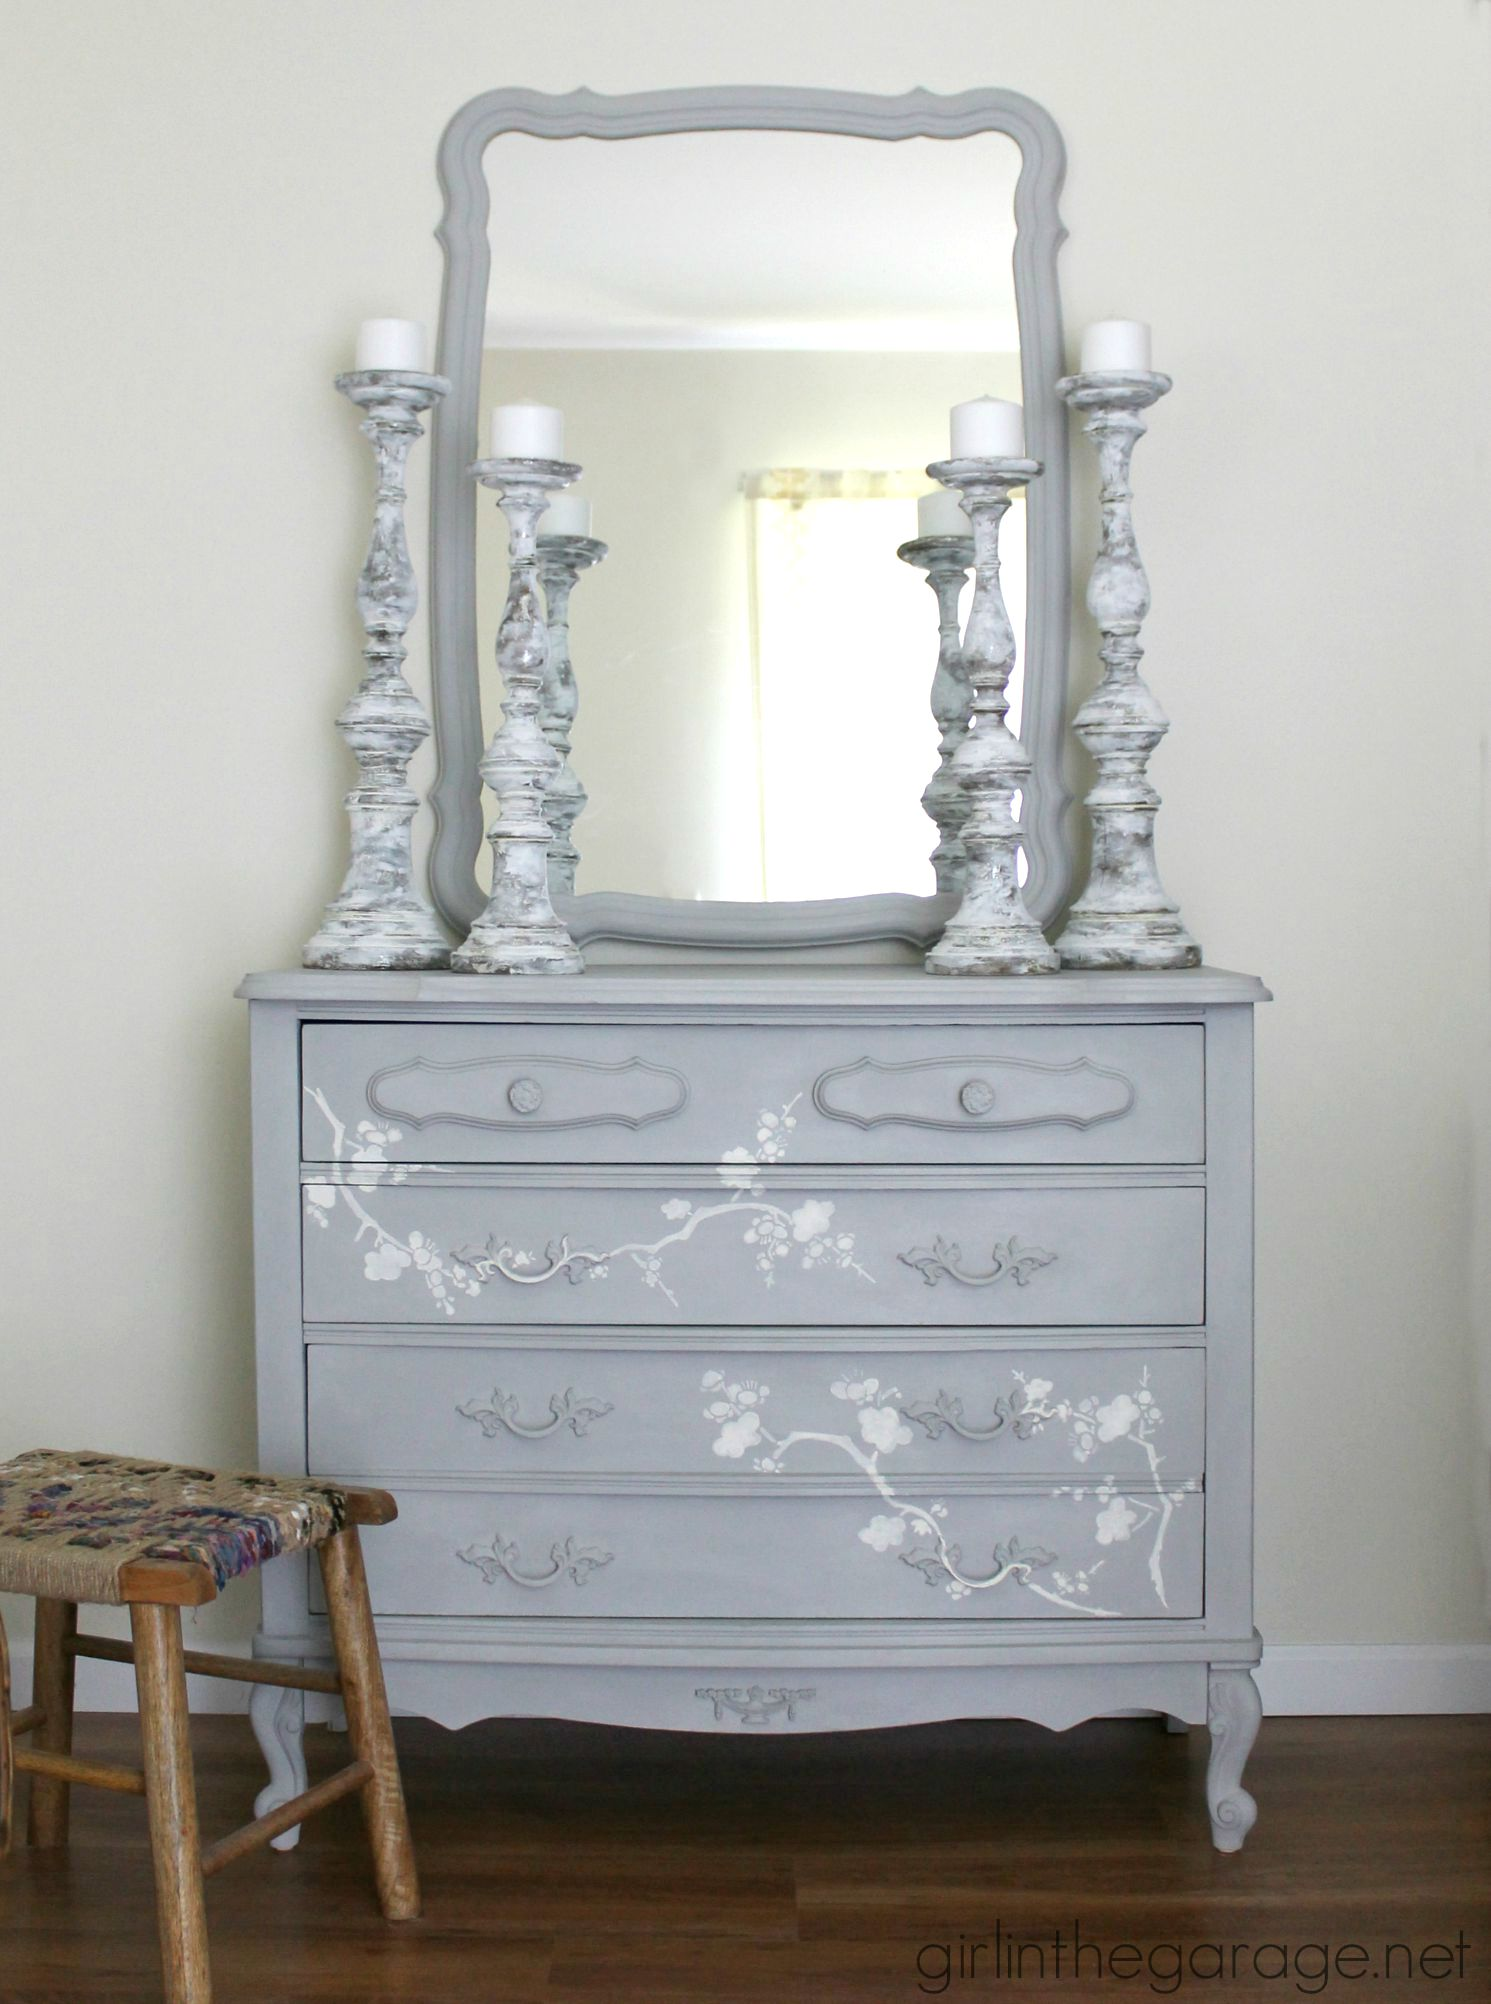 Cherry Blossom Vanity Makeover - by Girl in the Garage